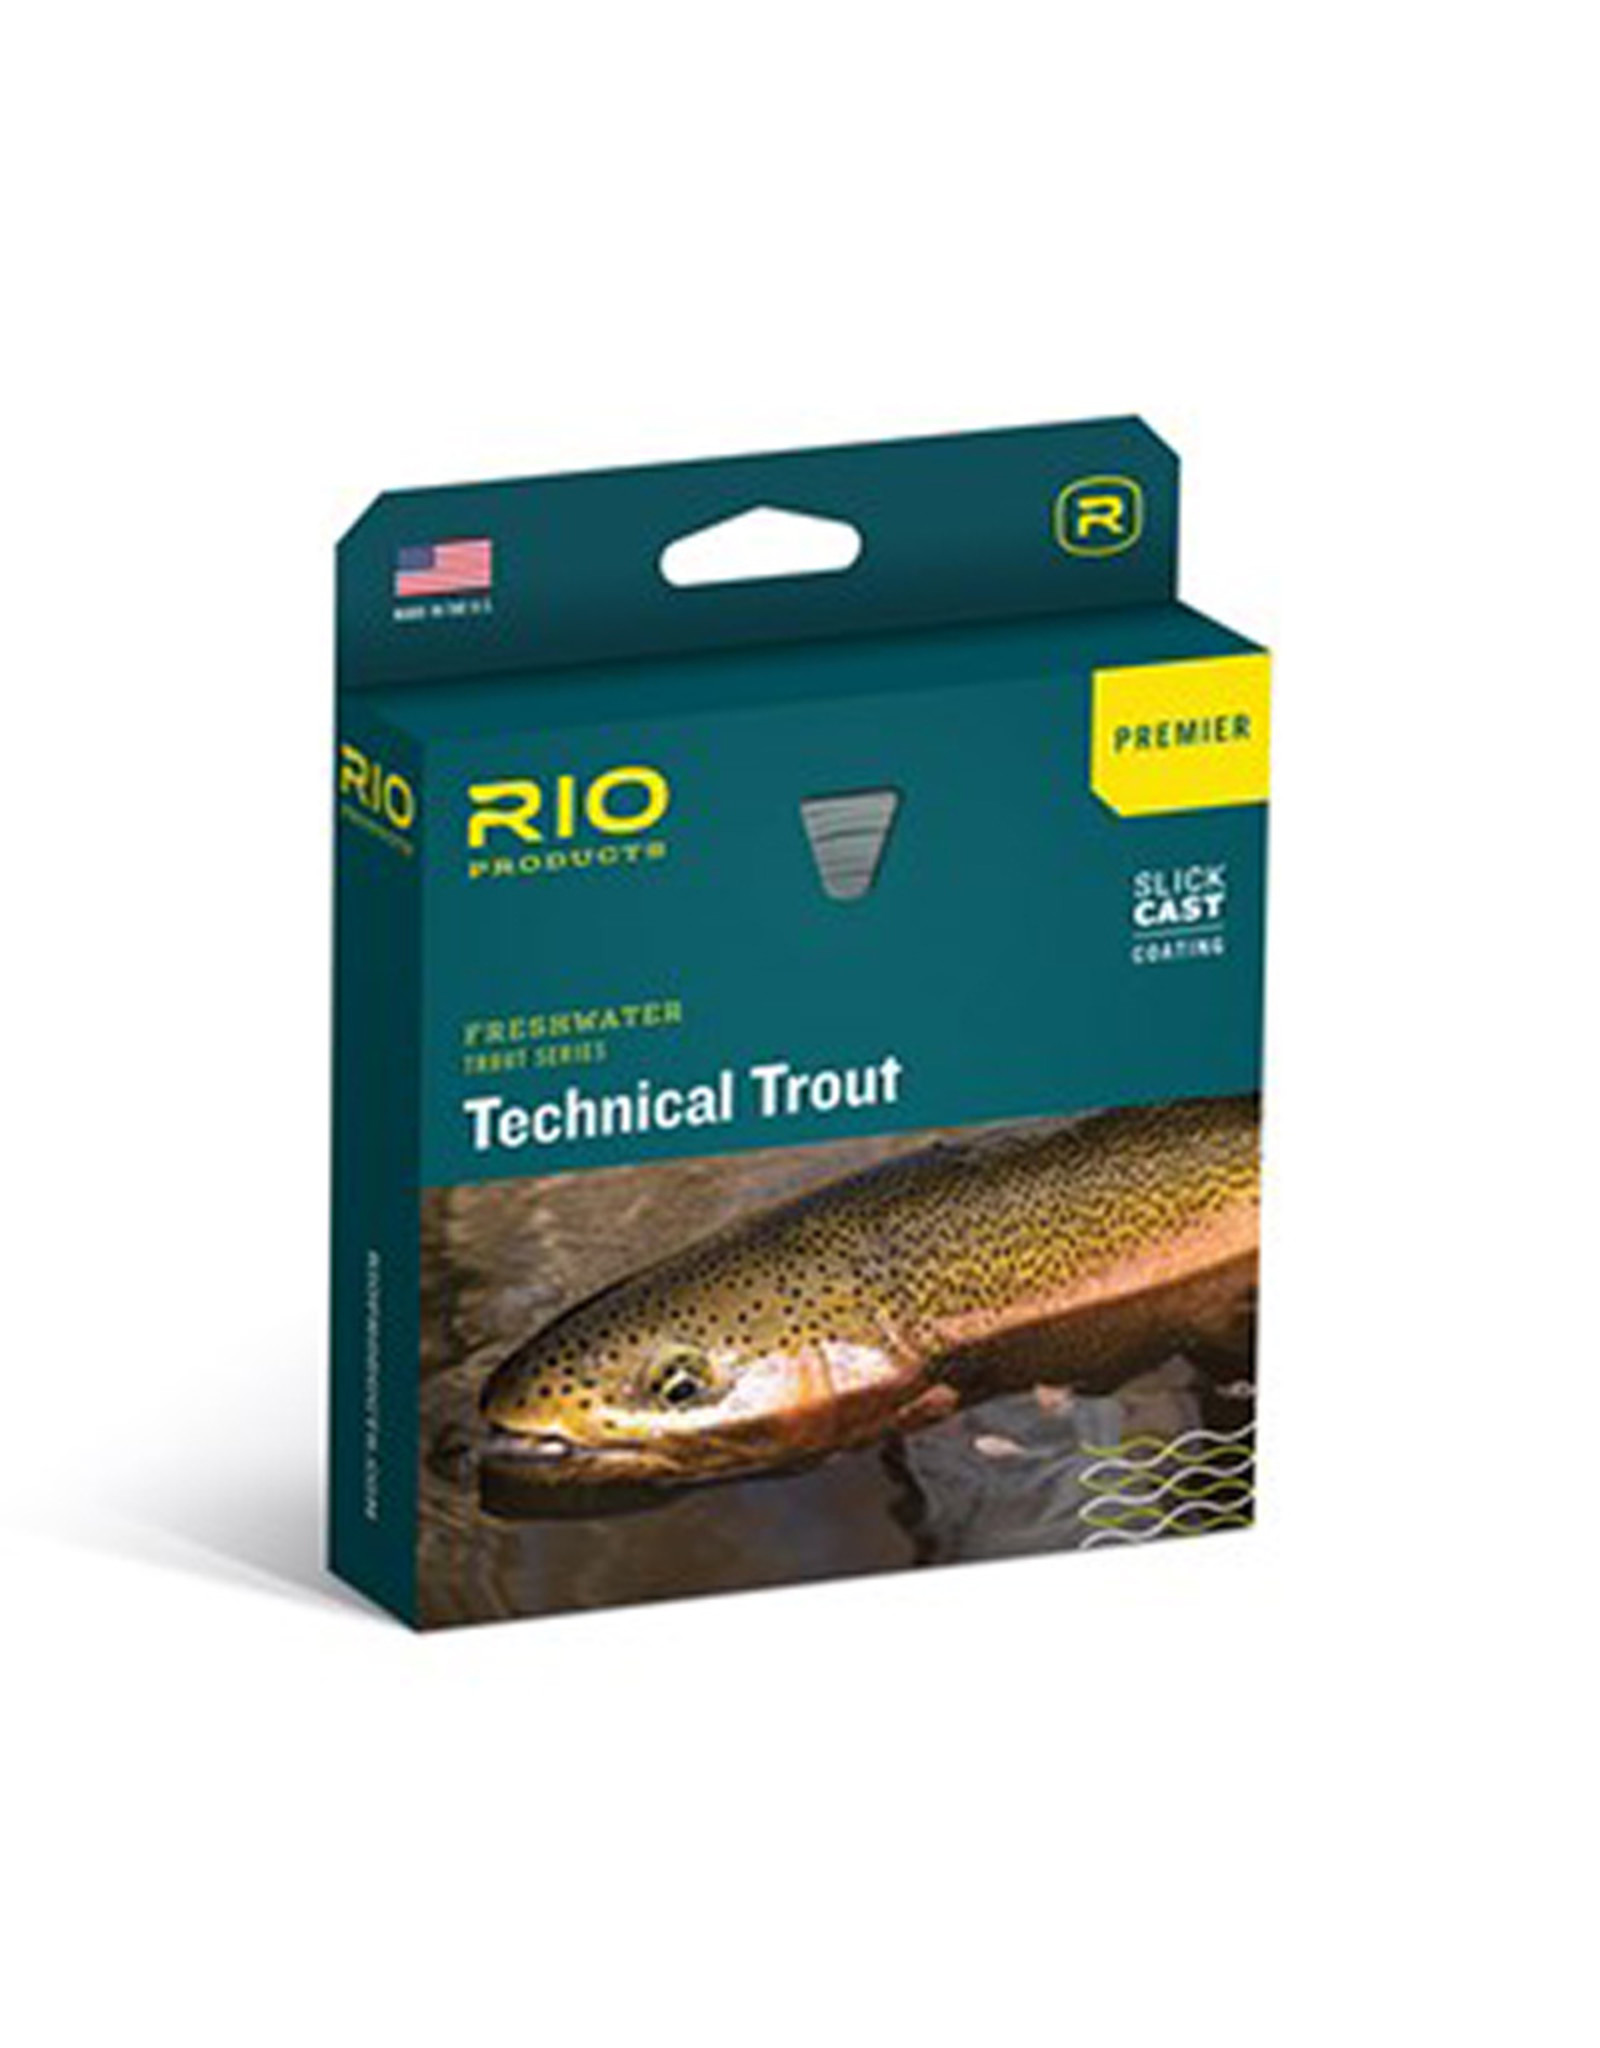 RIO Products Technical Trout DT